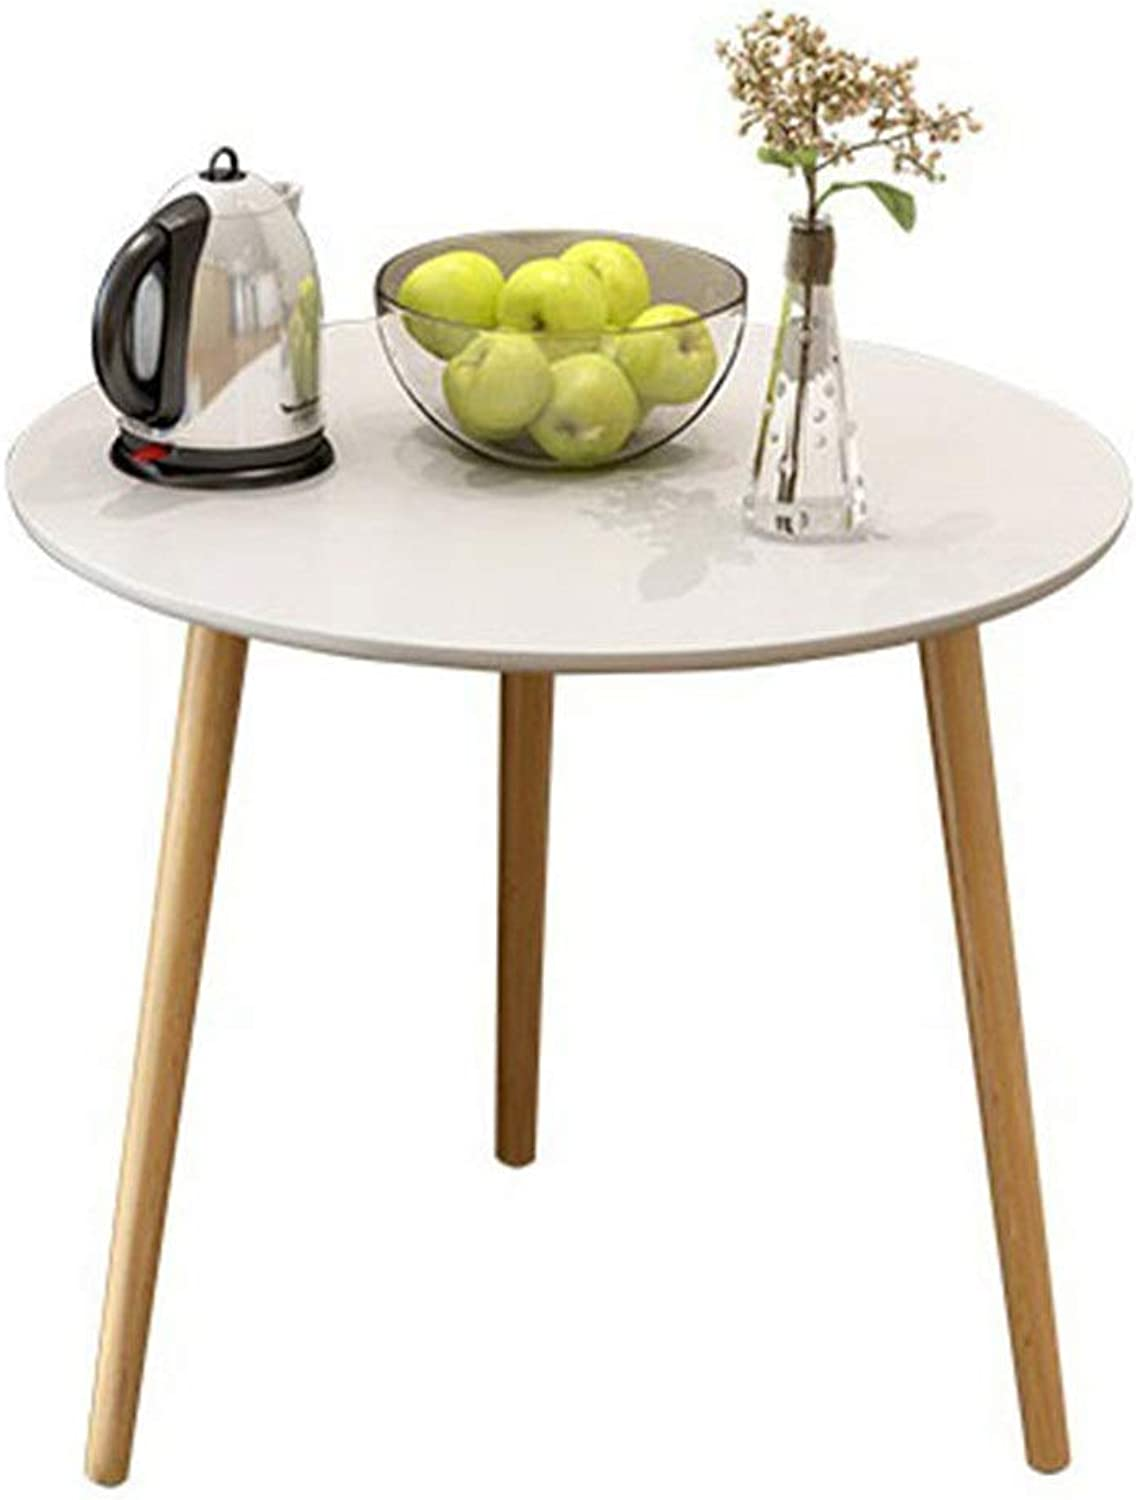 Coffee Table Living Room Balcony Home Multipurpose Modern Tables Oak Table Side Hall Tall Coffee Wine Hallway Furniture Small Table Modern Furniture Decor (Size   Redondo 60  60  50cm)